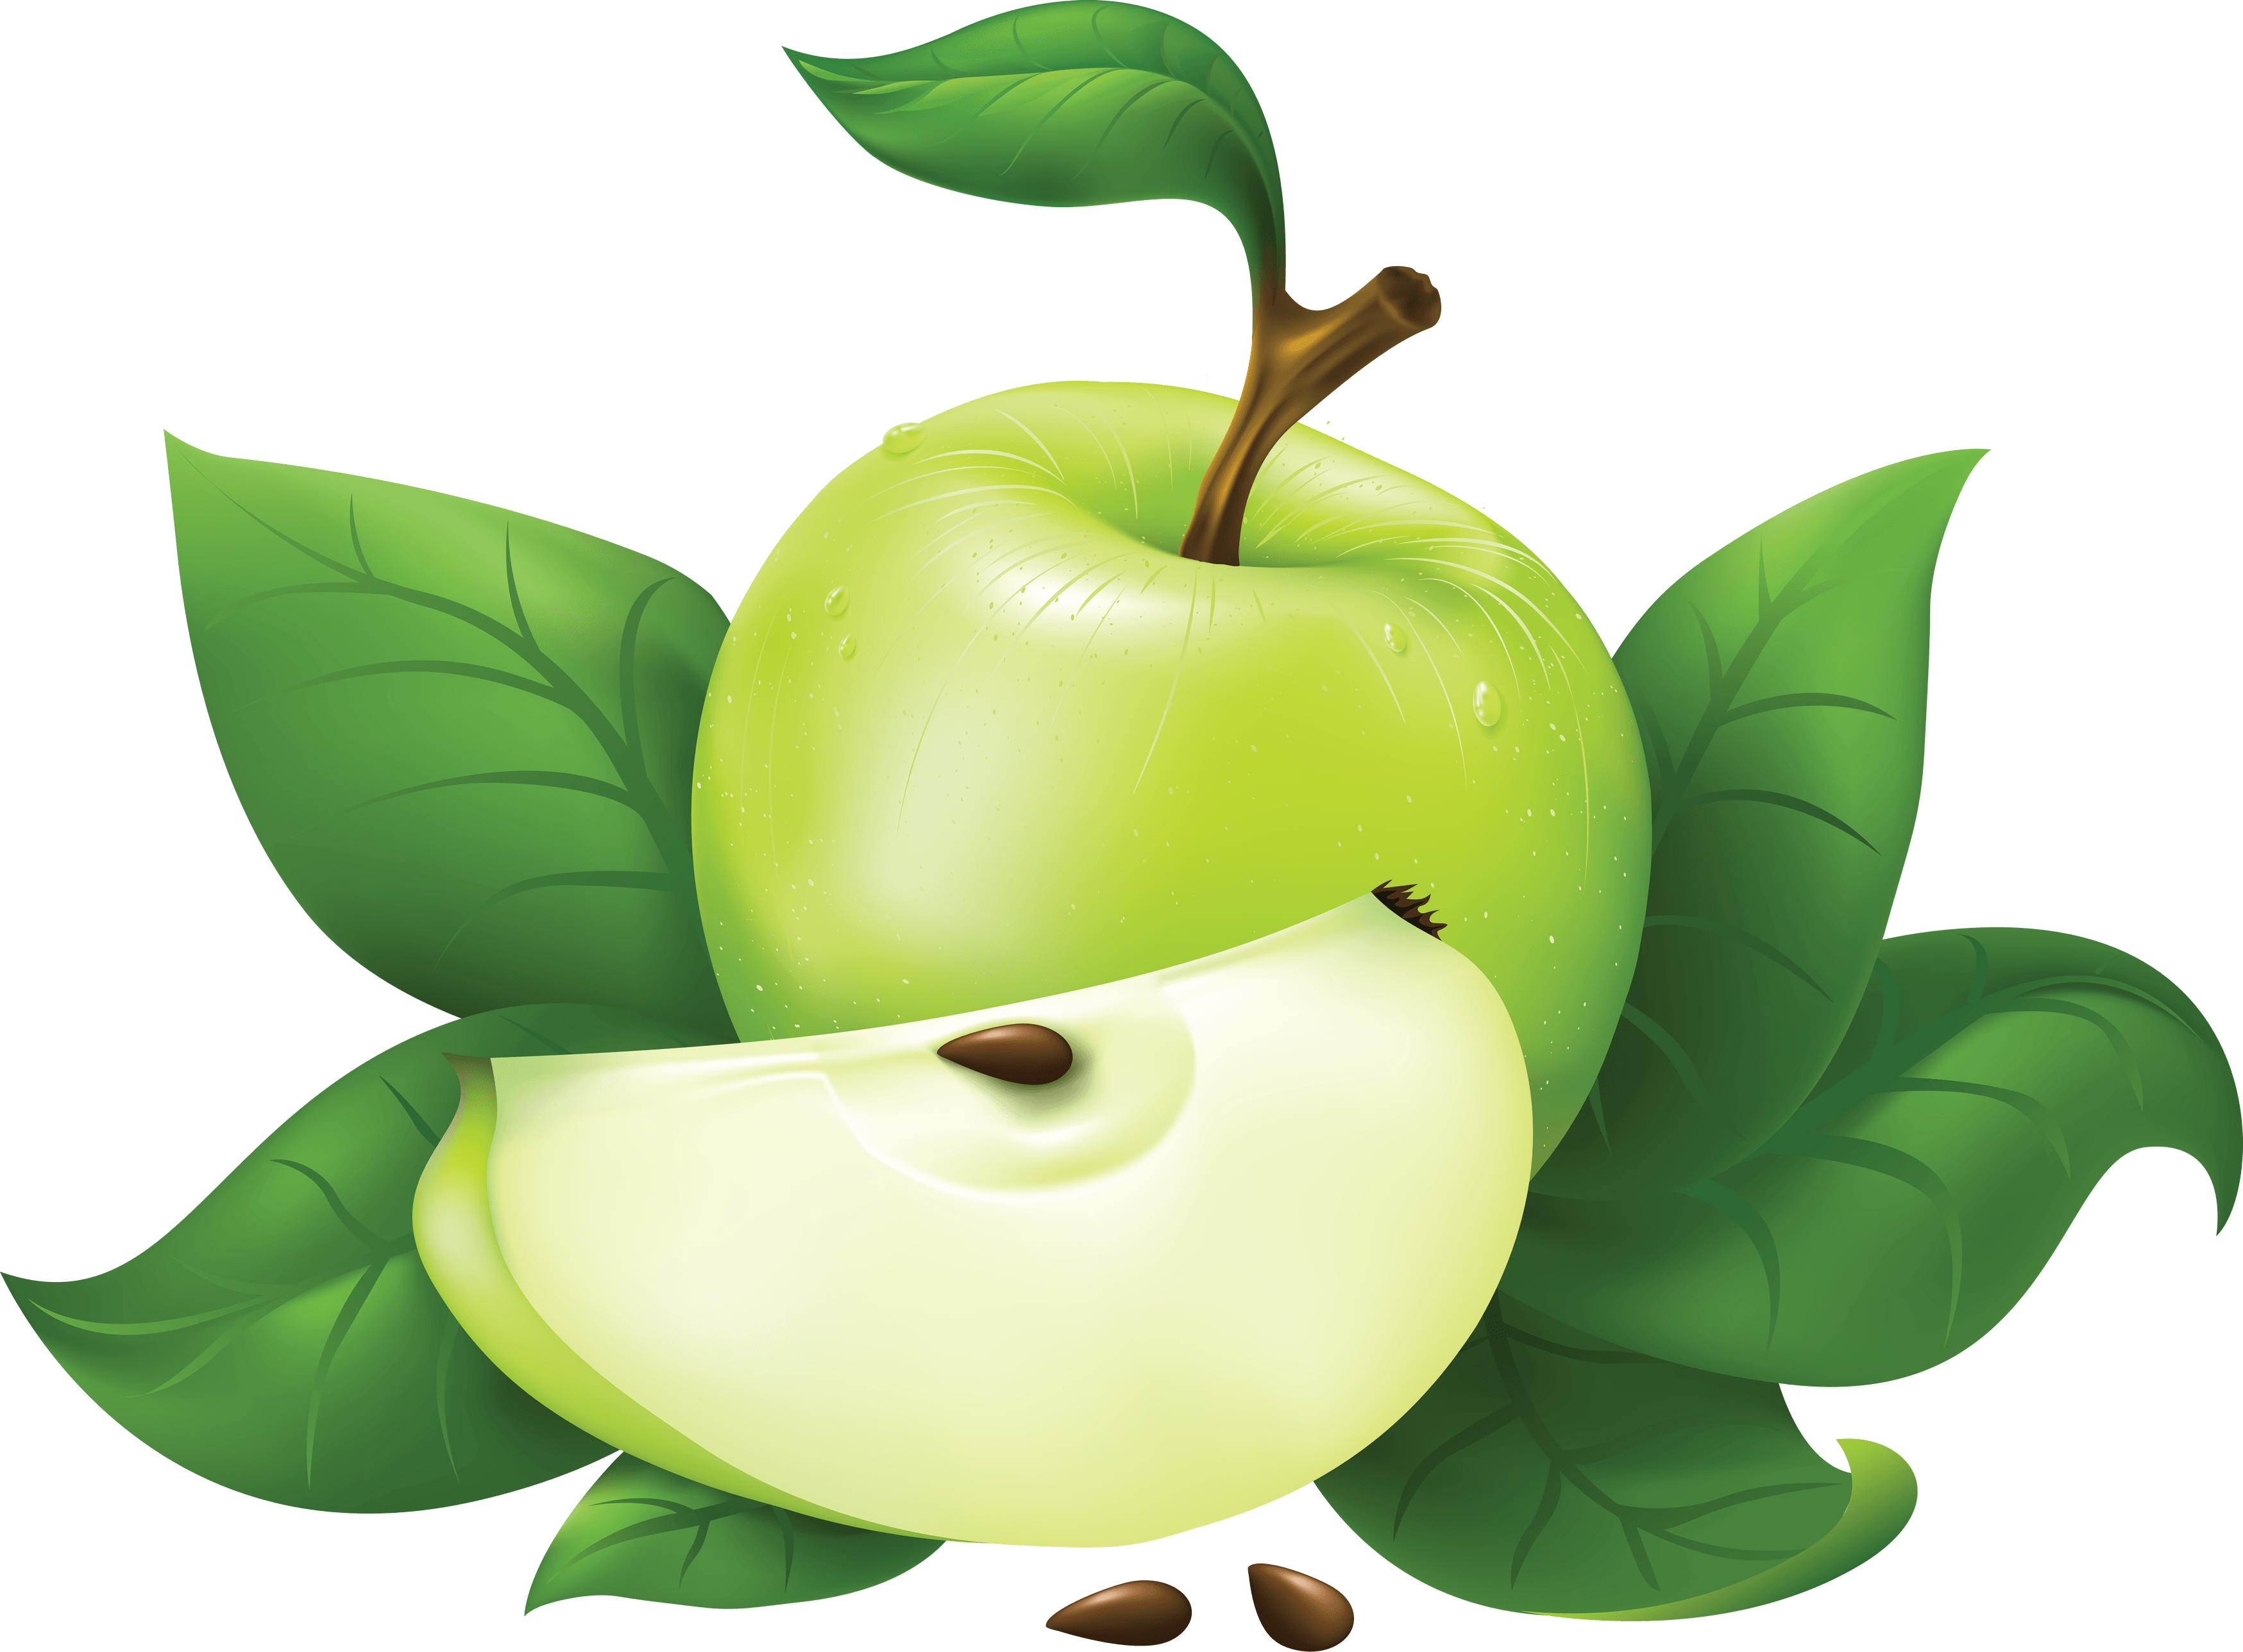 Green Apple Png Image PNG Image